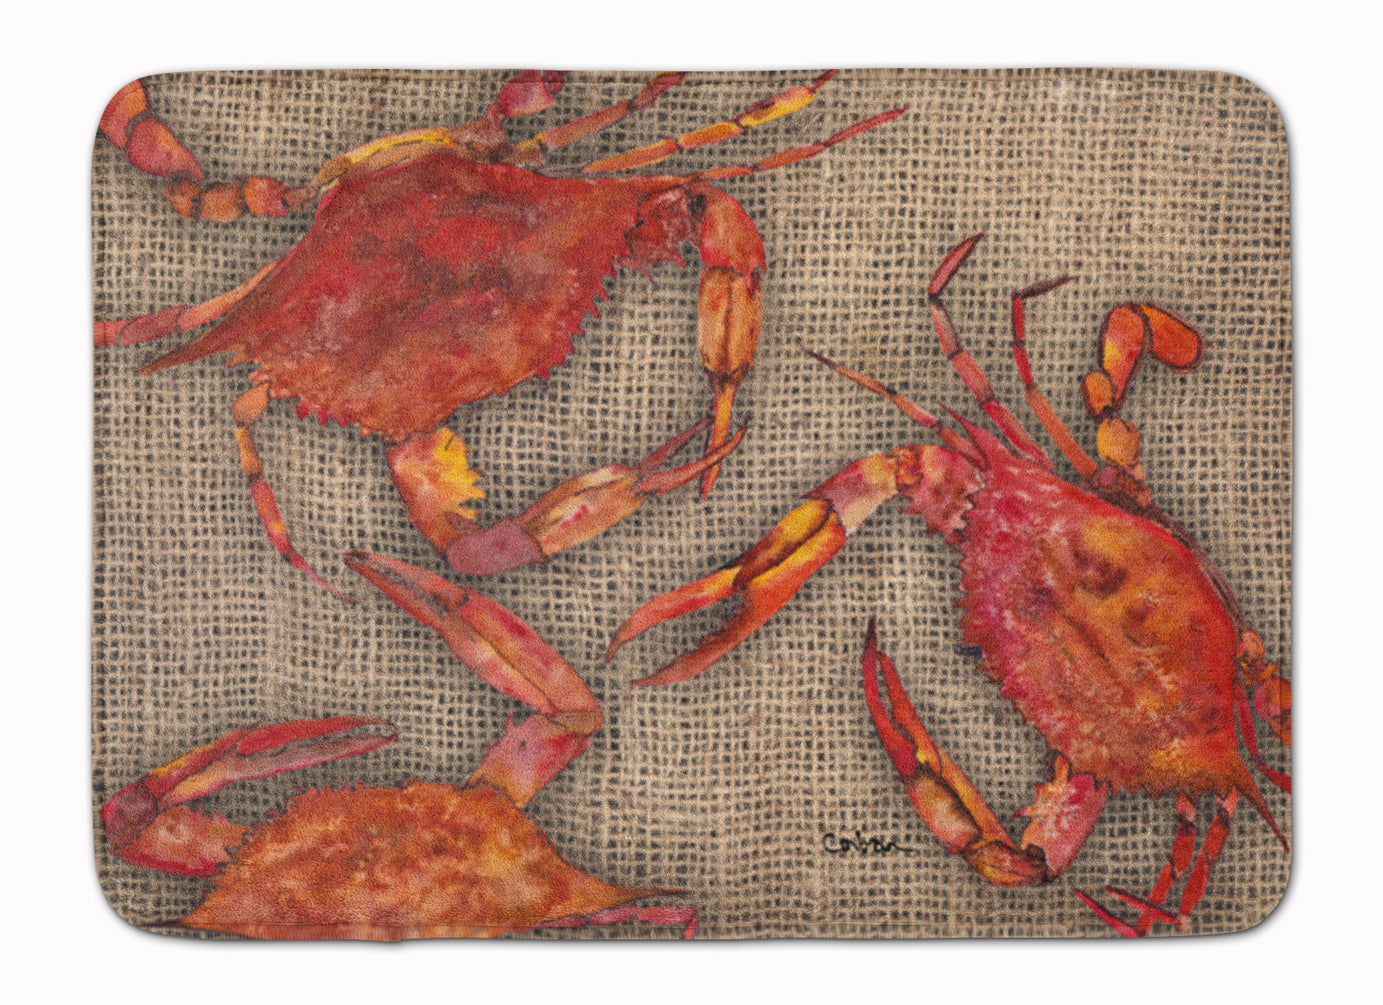 Cooked Crabs on Faux Burlap Machine Washable Memory Foam Mat 8742RUG by Caroline's Treasures